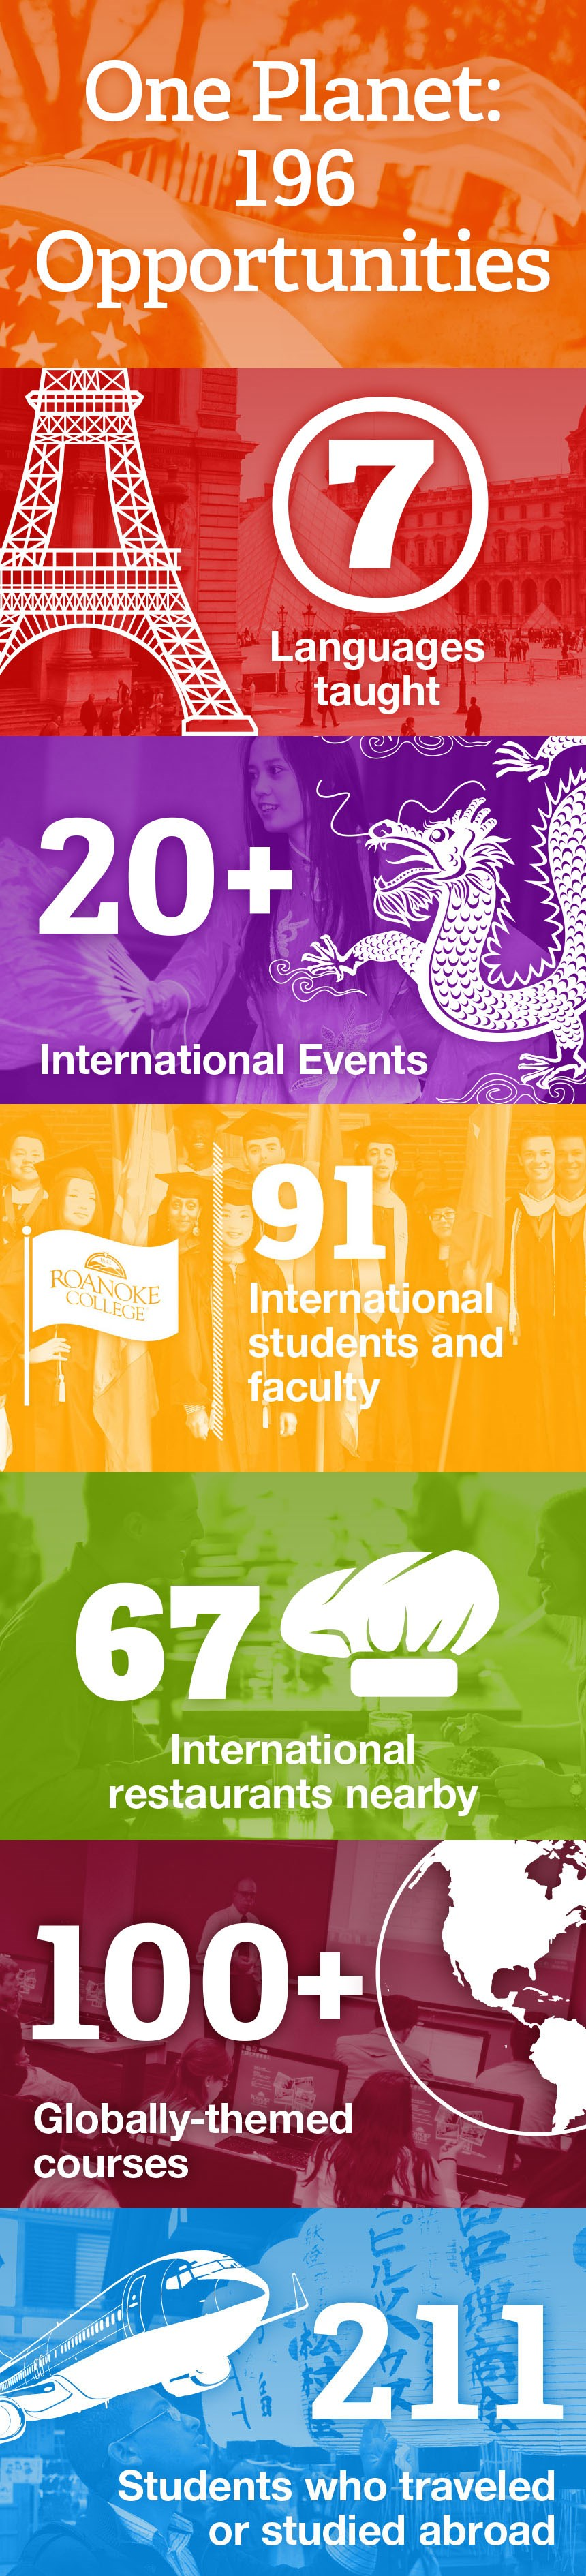 One planet: 196 opportunities, 7 languages taught, 20+ international events, 91 international students and faculty, 67 international restaurants nearby, 100+ globally-themed courses, 211 students who traveled or studied abroad